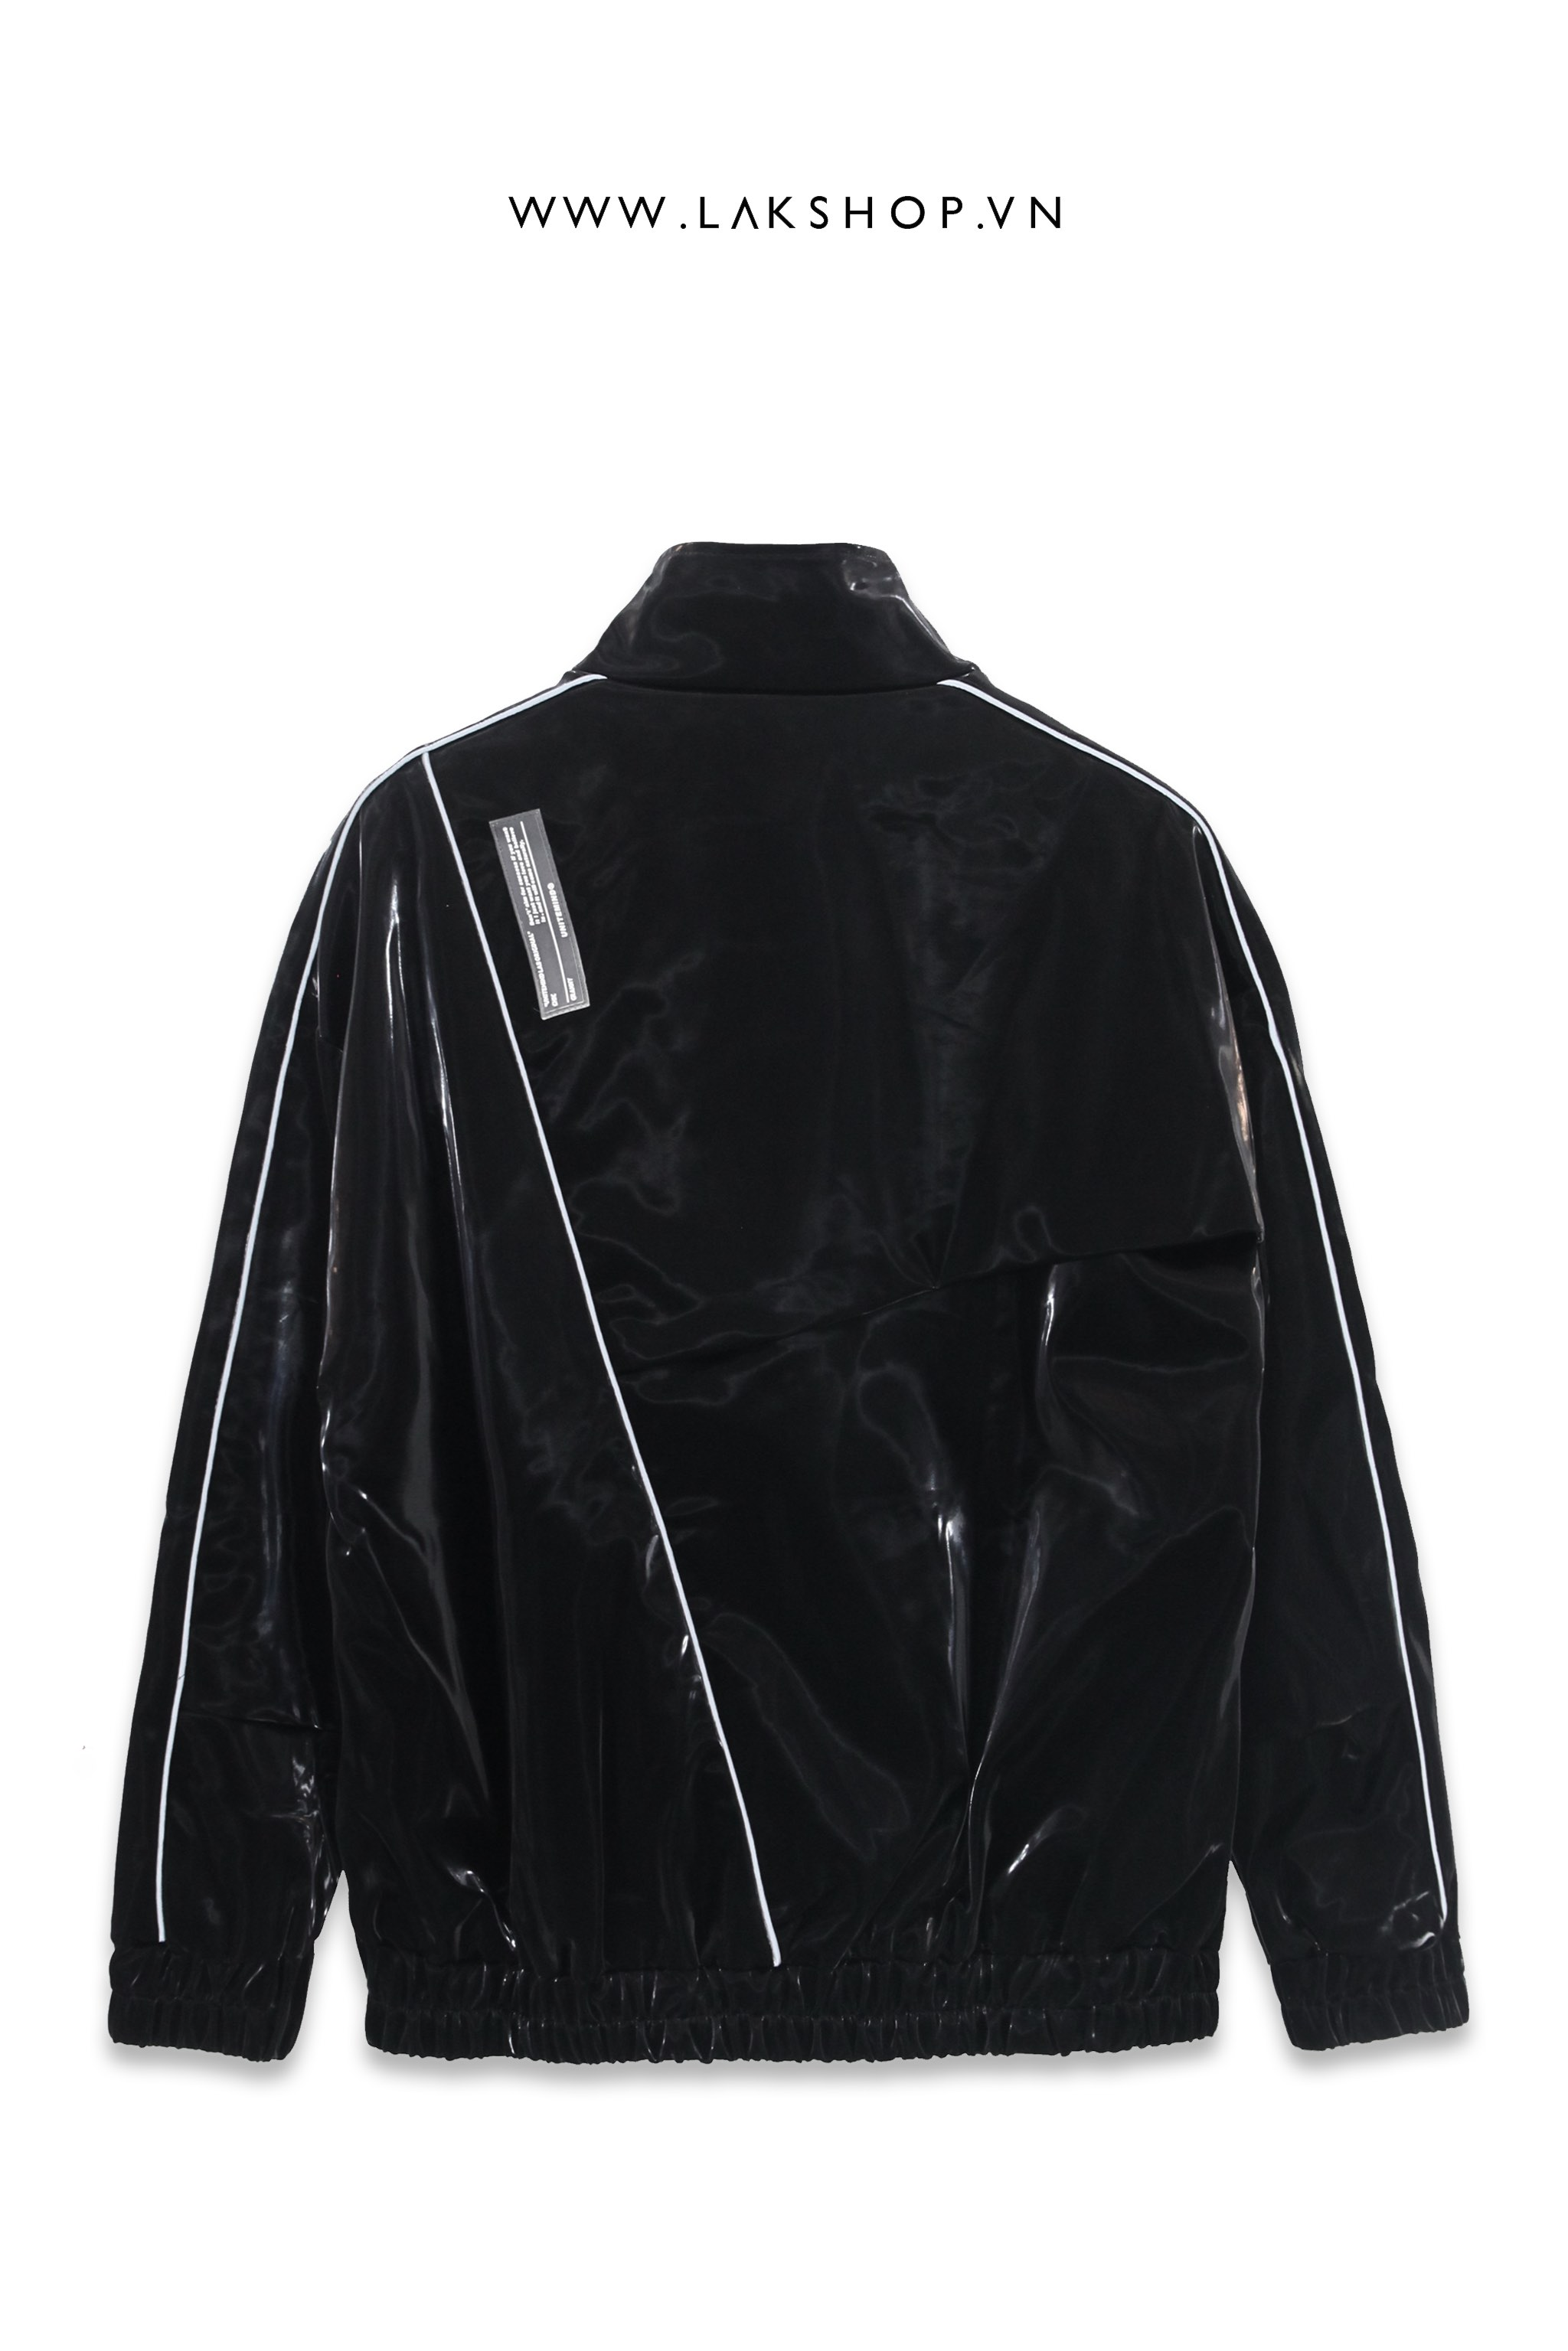 Lak Studios Faux Leather Shirt with Metallic Collar